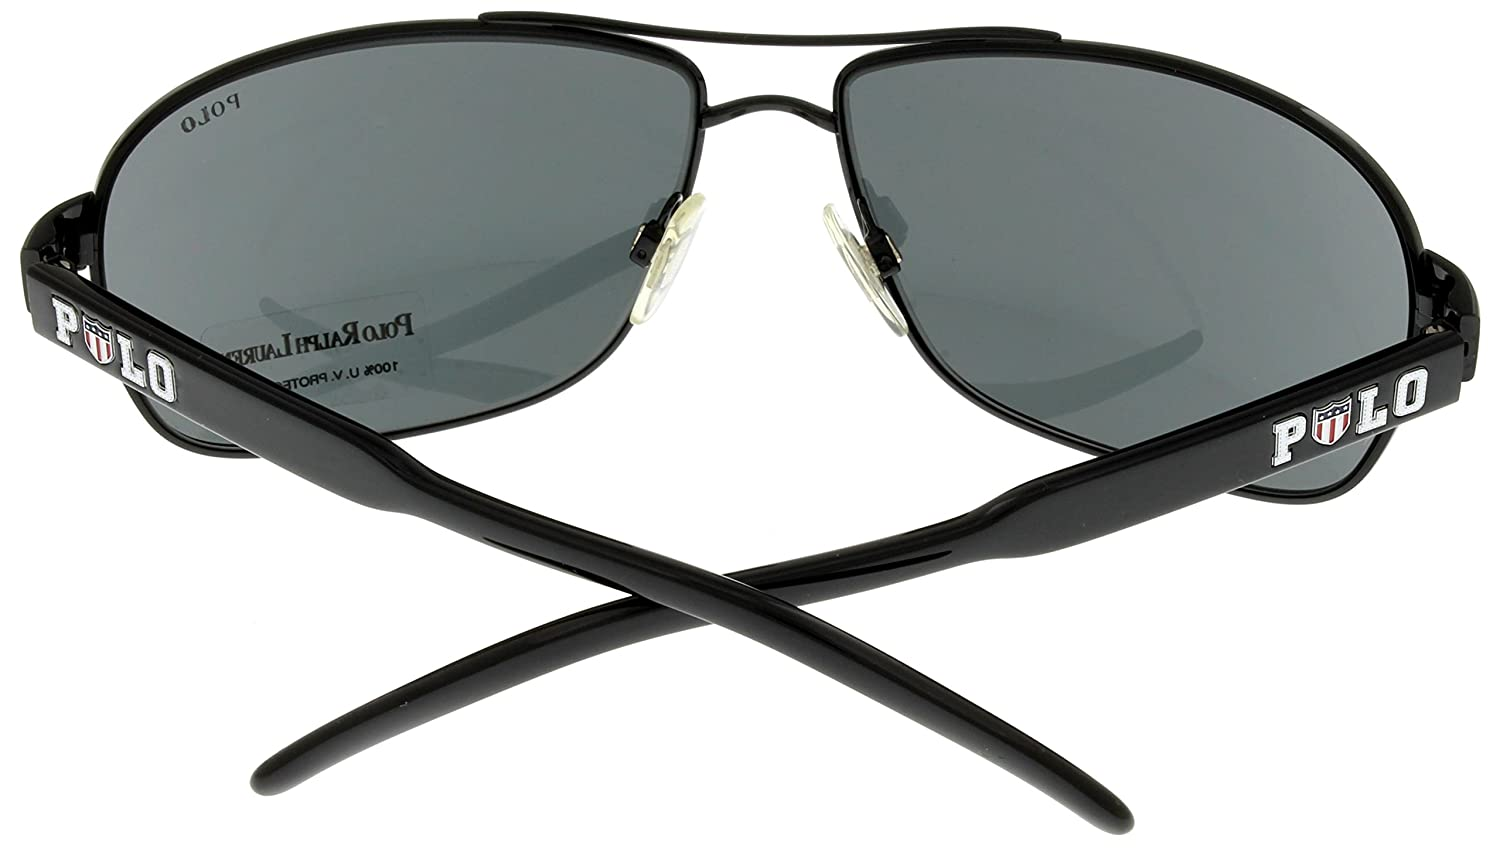 Amazon.com: anteojos de sol Aviator Womens Negro de Polo ...